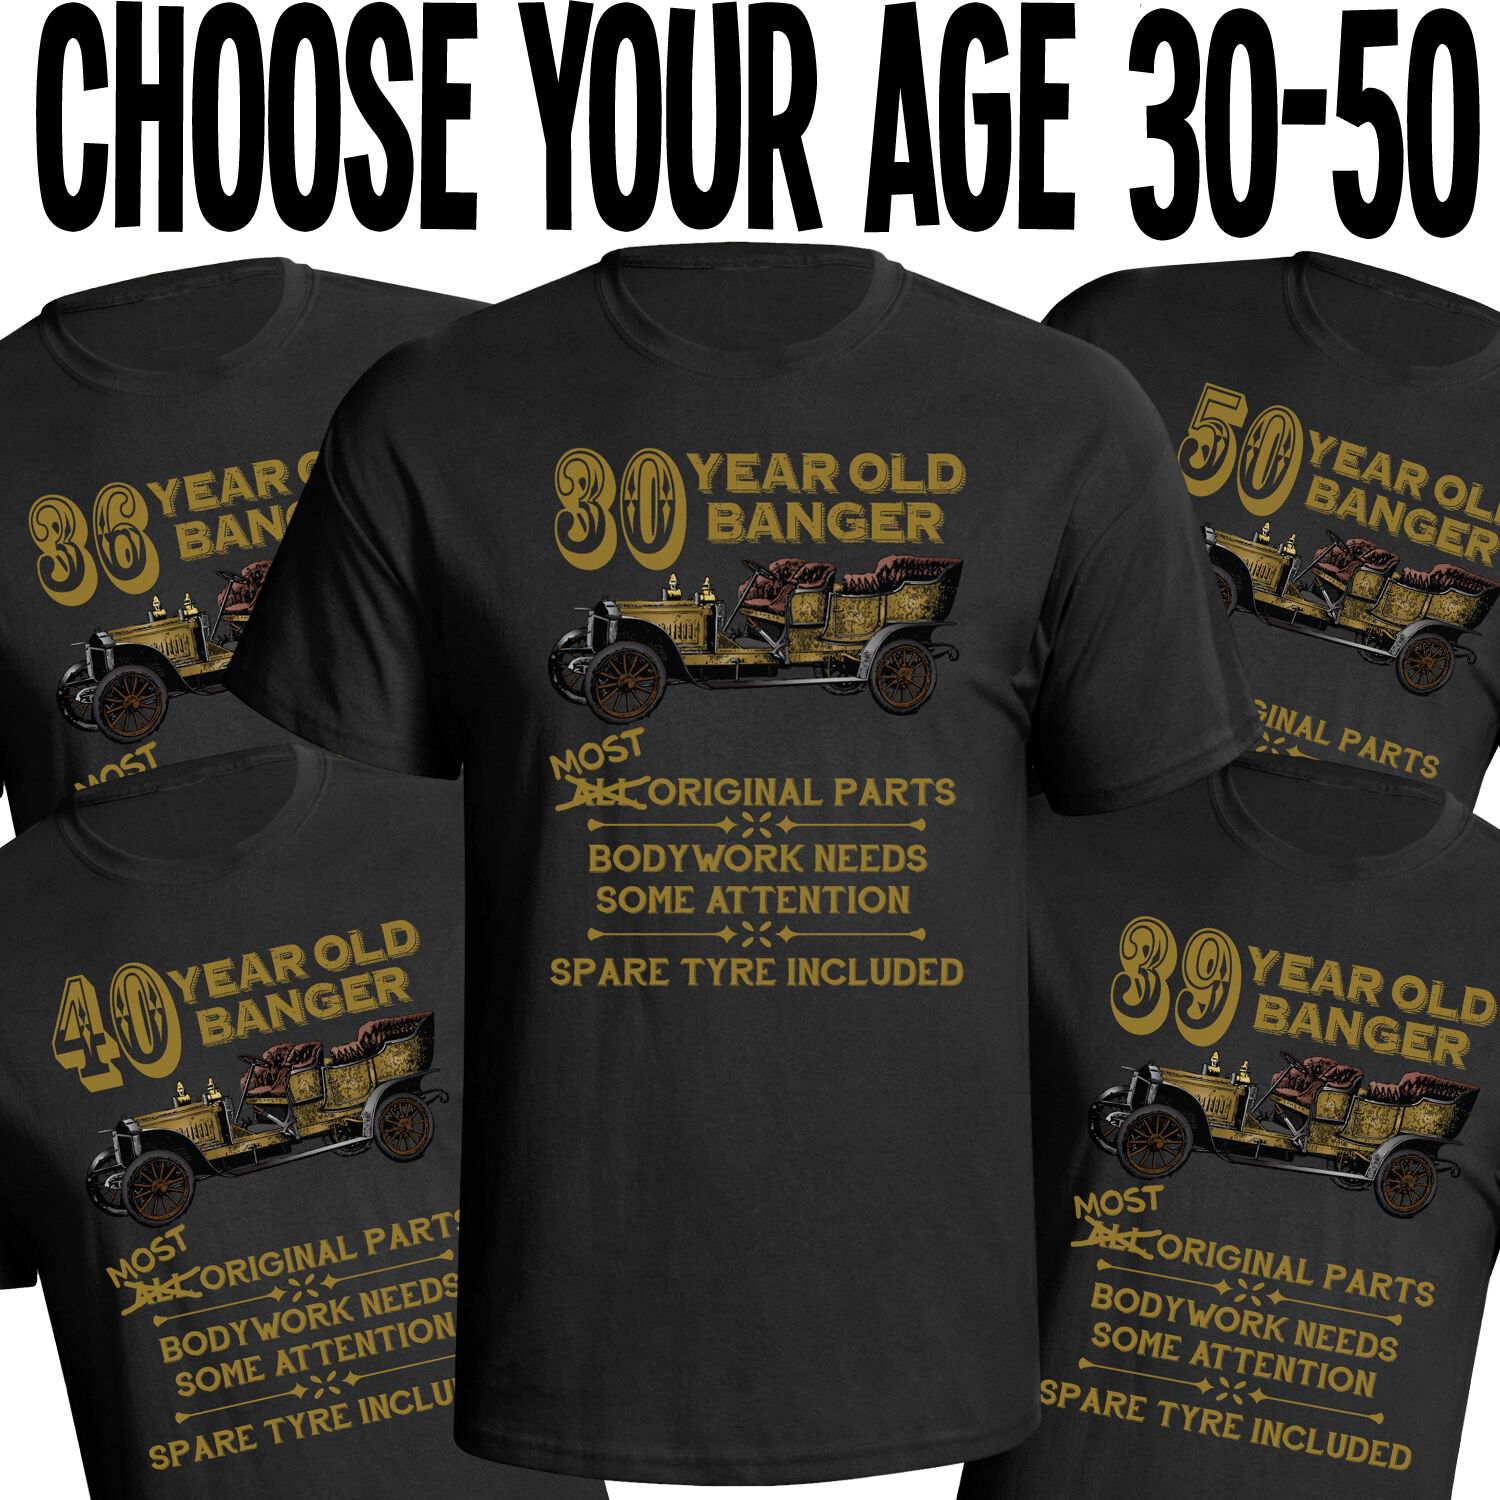 aa2b1cdd2a3 Details about Birthday Old Banger Mens T-Shirt Funny Gift Choose Year In  Listing From 30 - 50